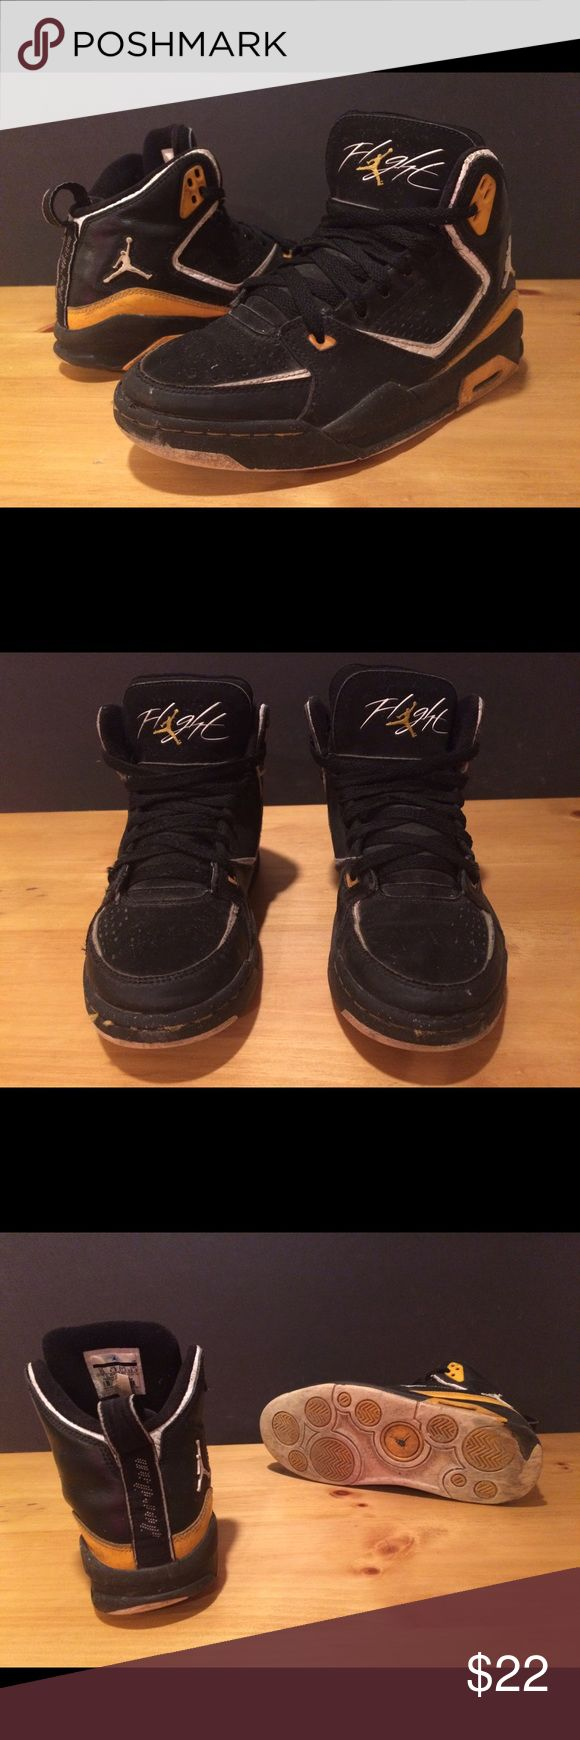 Boy's Size 5Y Jordan Flight Hightop Shoes Boy's Size 5Y Jordan Flight yellow & black Hightop shoes. See photos and please message with any questions! :) Jordan Shoes Sneakers